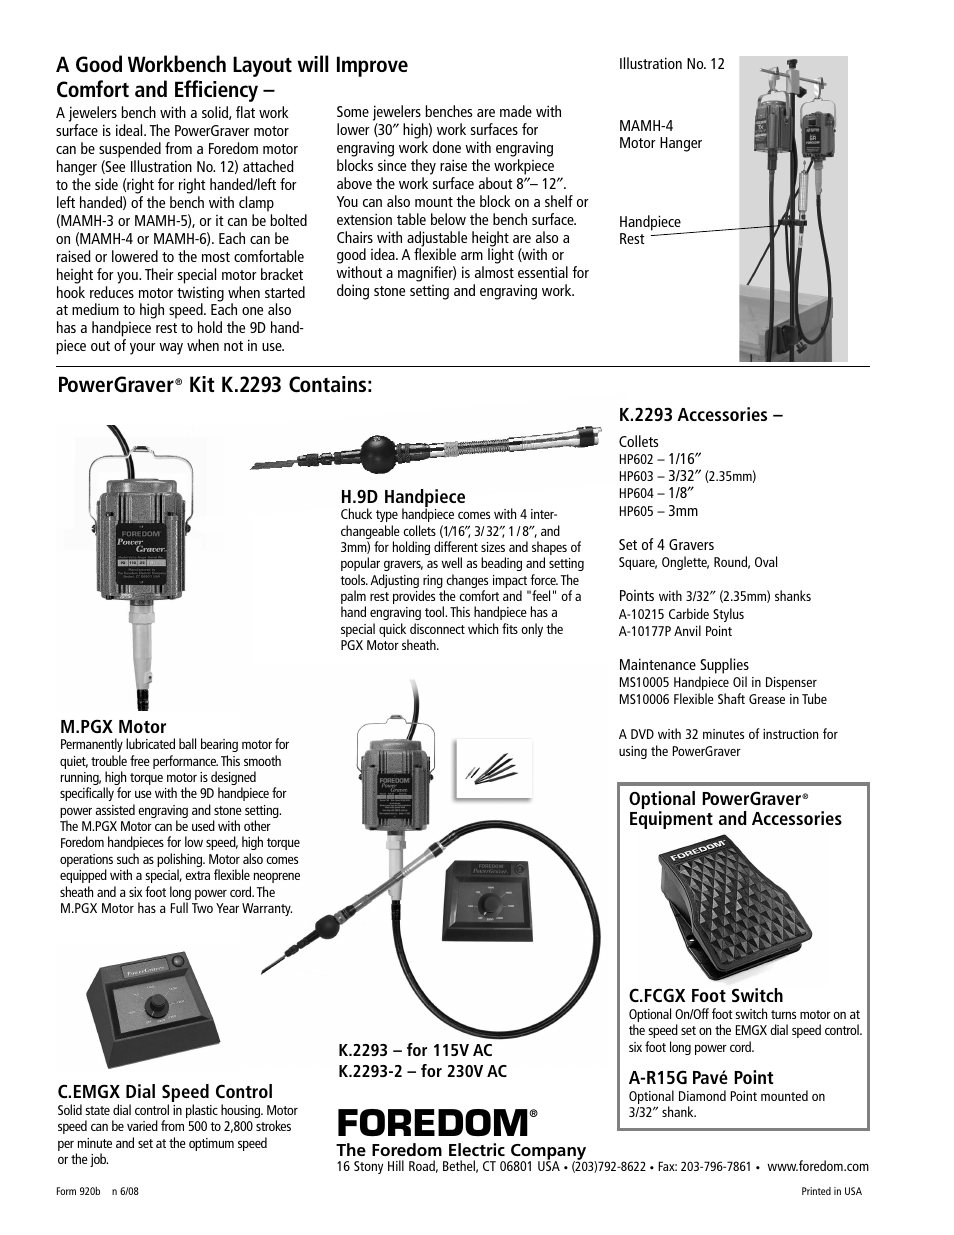 Foredom, Powergraver, Kit k 2293 contains | Foredom Safety